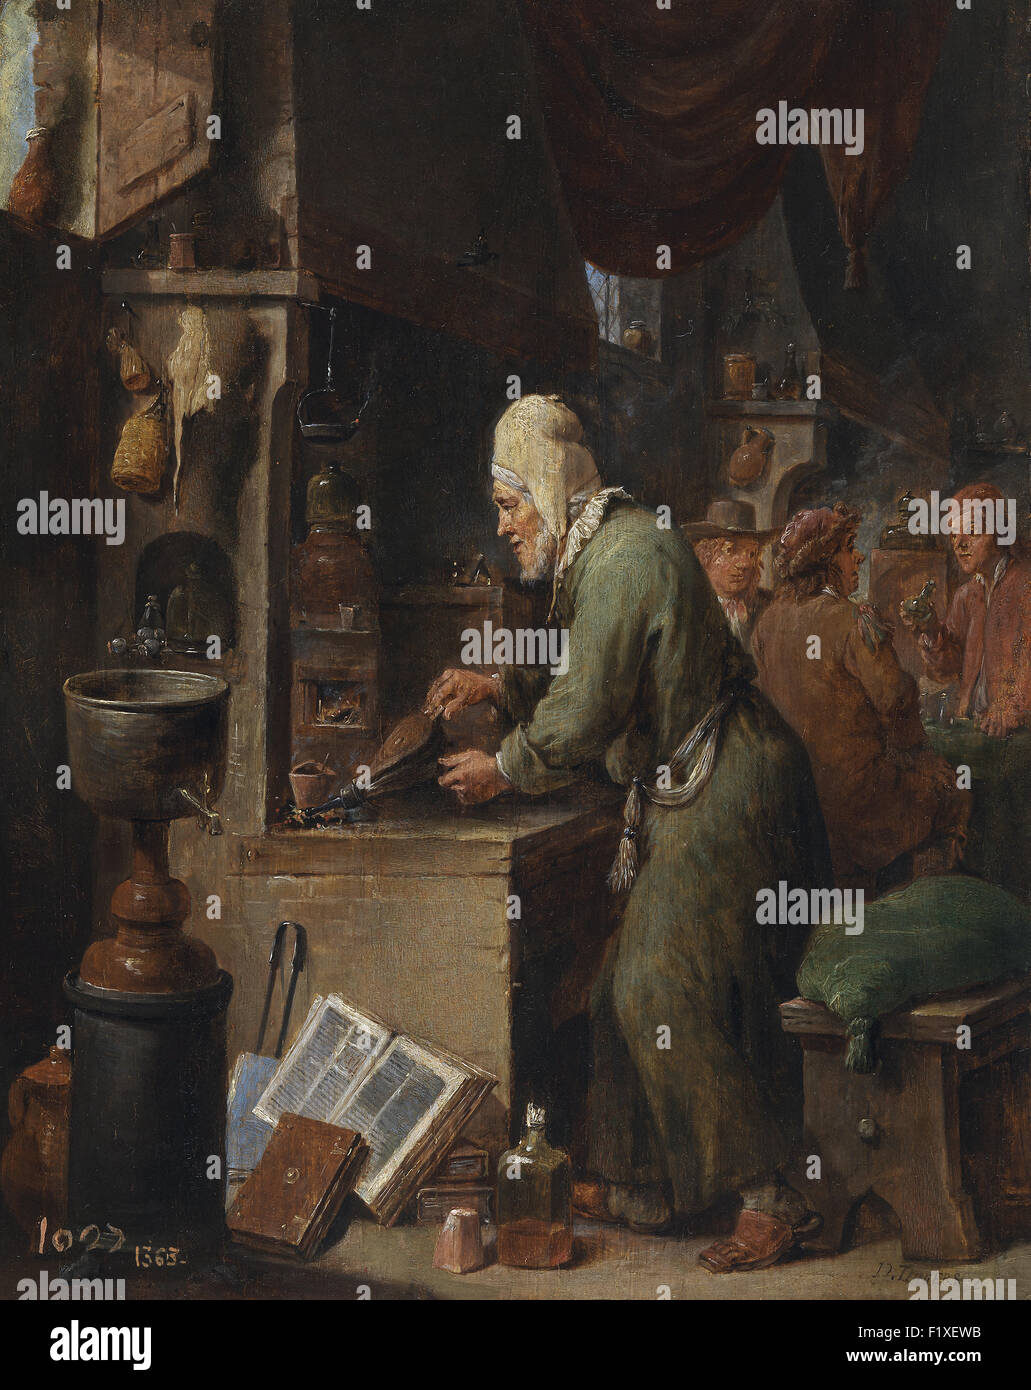 David Teniers the Younger - The Alchemist - Stock Image